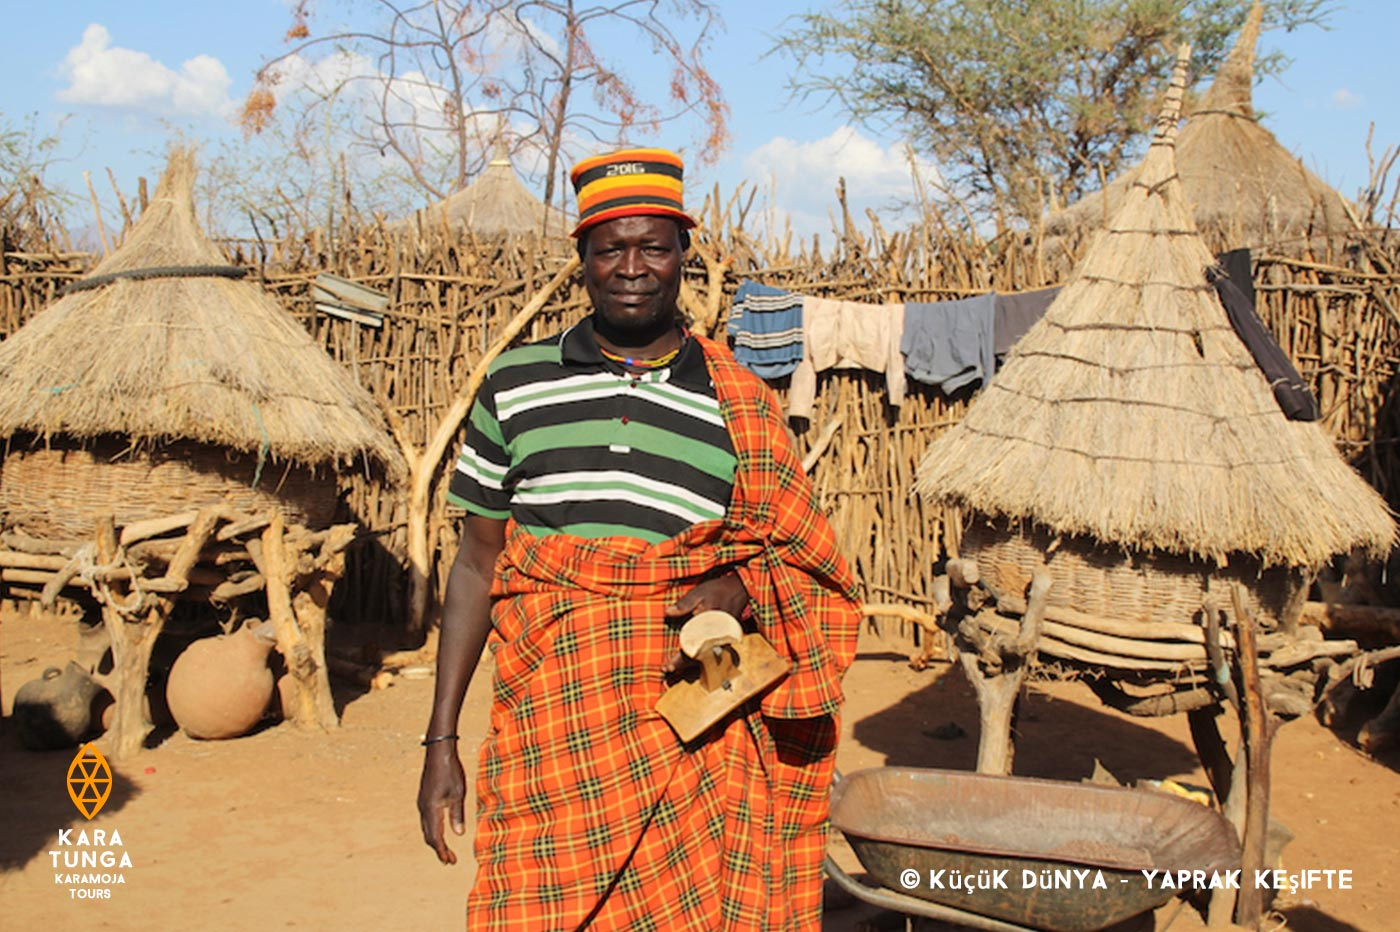 Kara-tunga-karamoja-travel-safari-tour-turkey